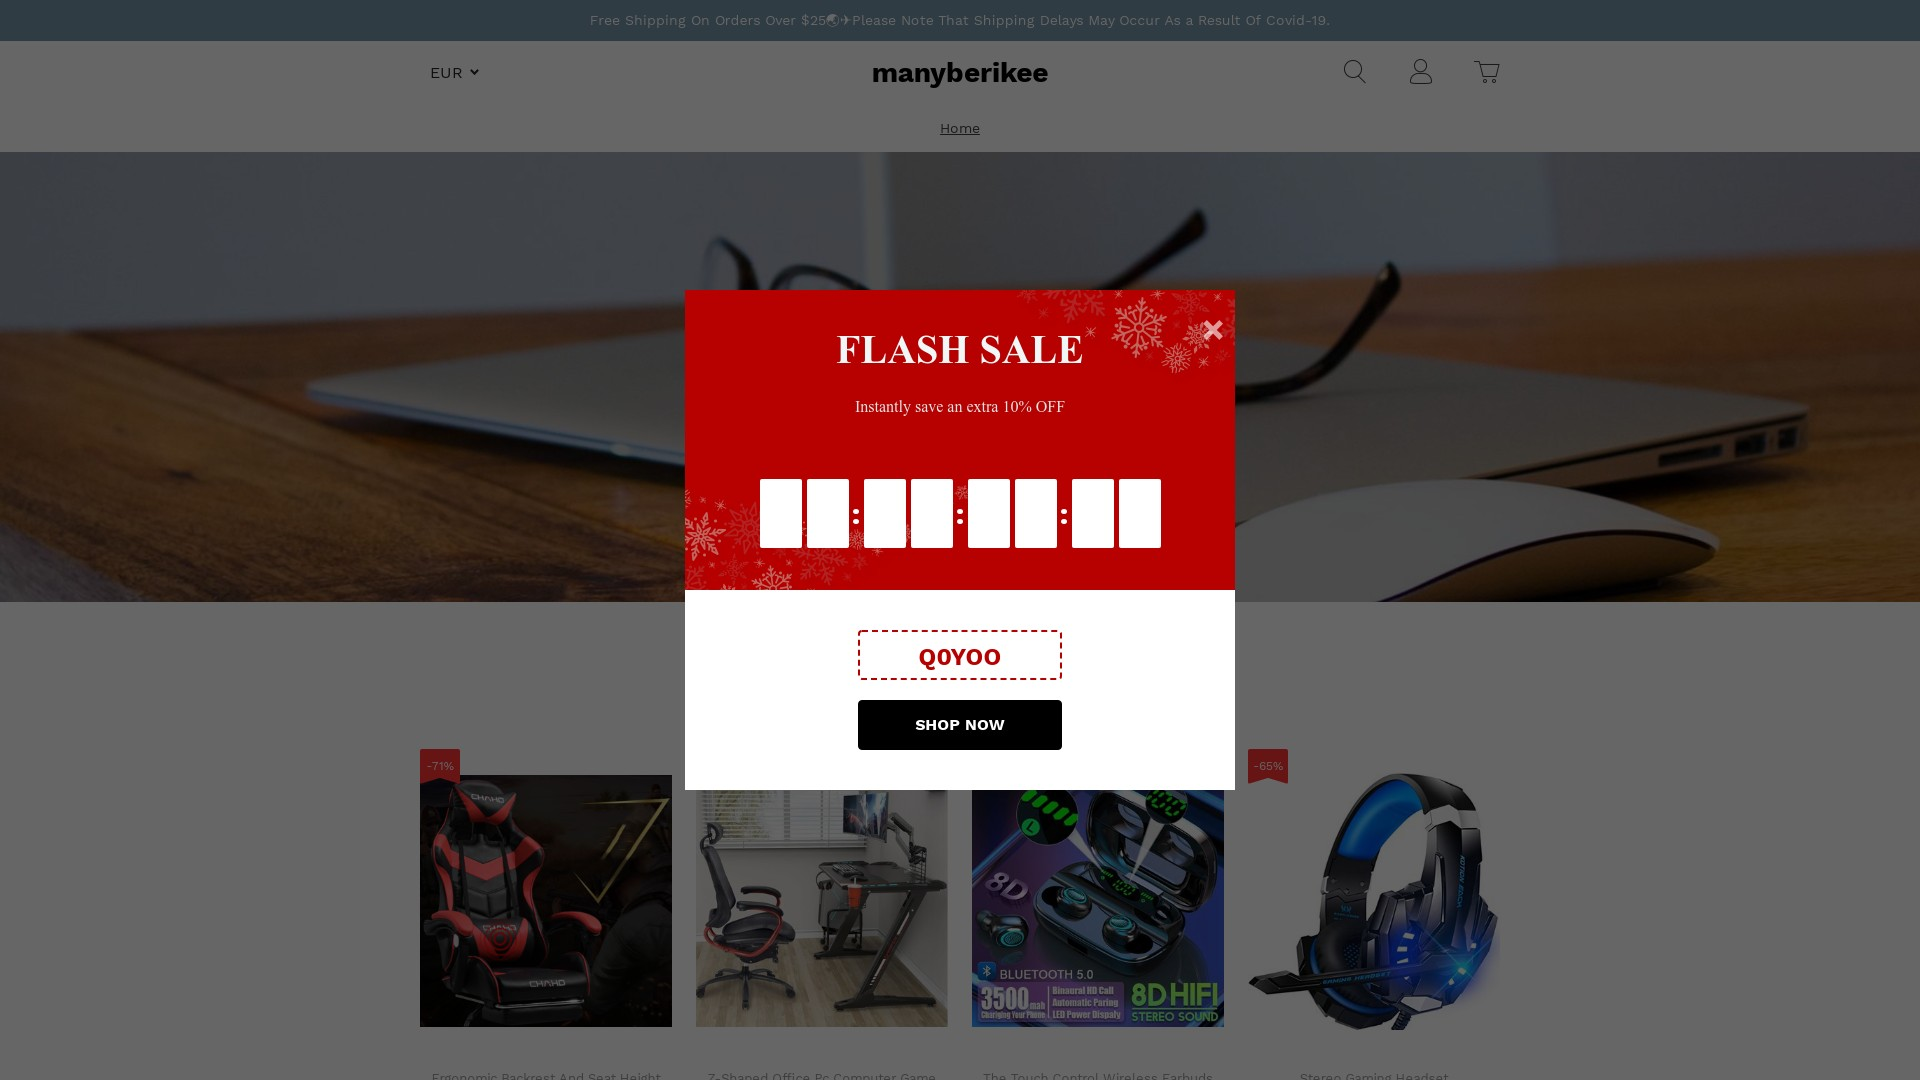 Is Manyberikee Chair a Scam? See the Review of the Online Store